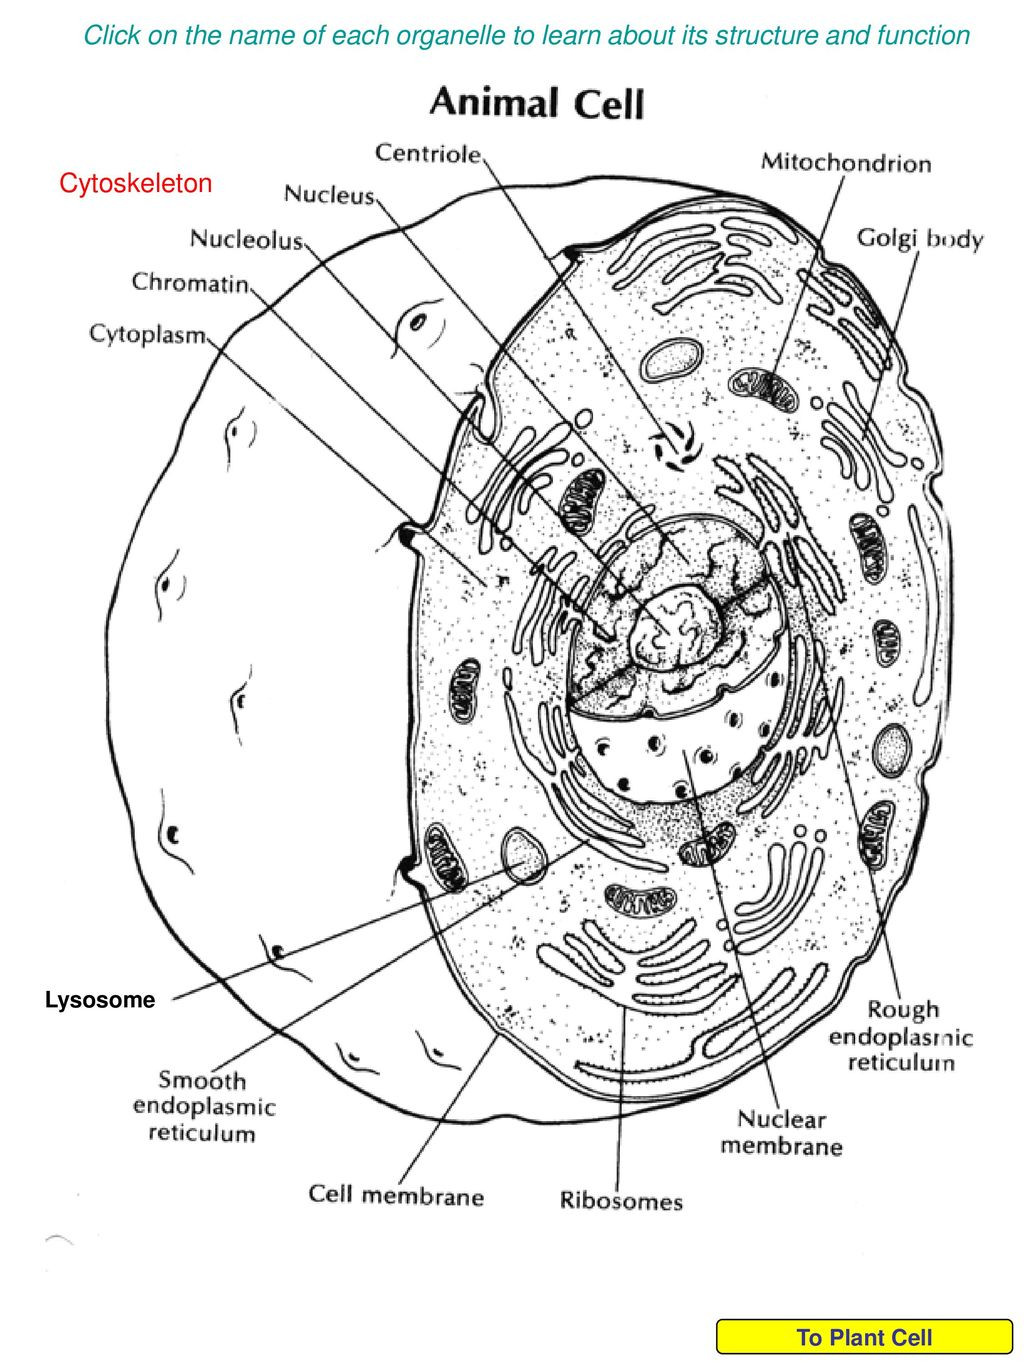 Cells and their organelles Worksheet On the Name Of Each organelle to Learn About Its